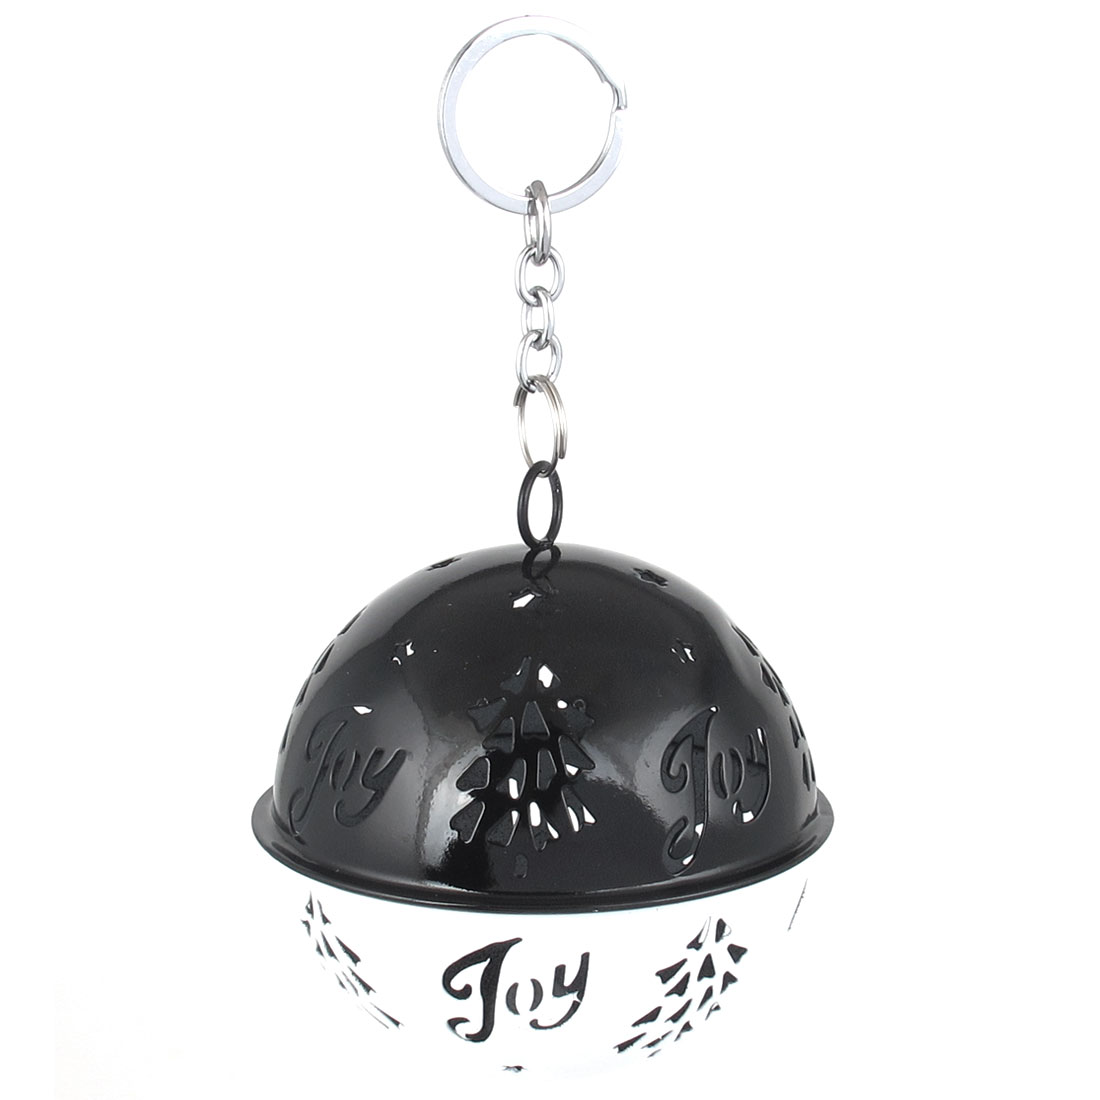 85mm Diameter White Black Metal Christmas Tree Detail Ball Shape Keychain Hollow Out Design Jingle Ring Bell Ornament for Celebration Party Case